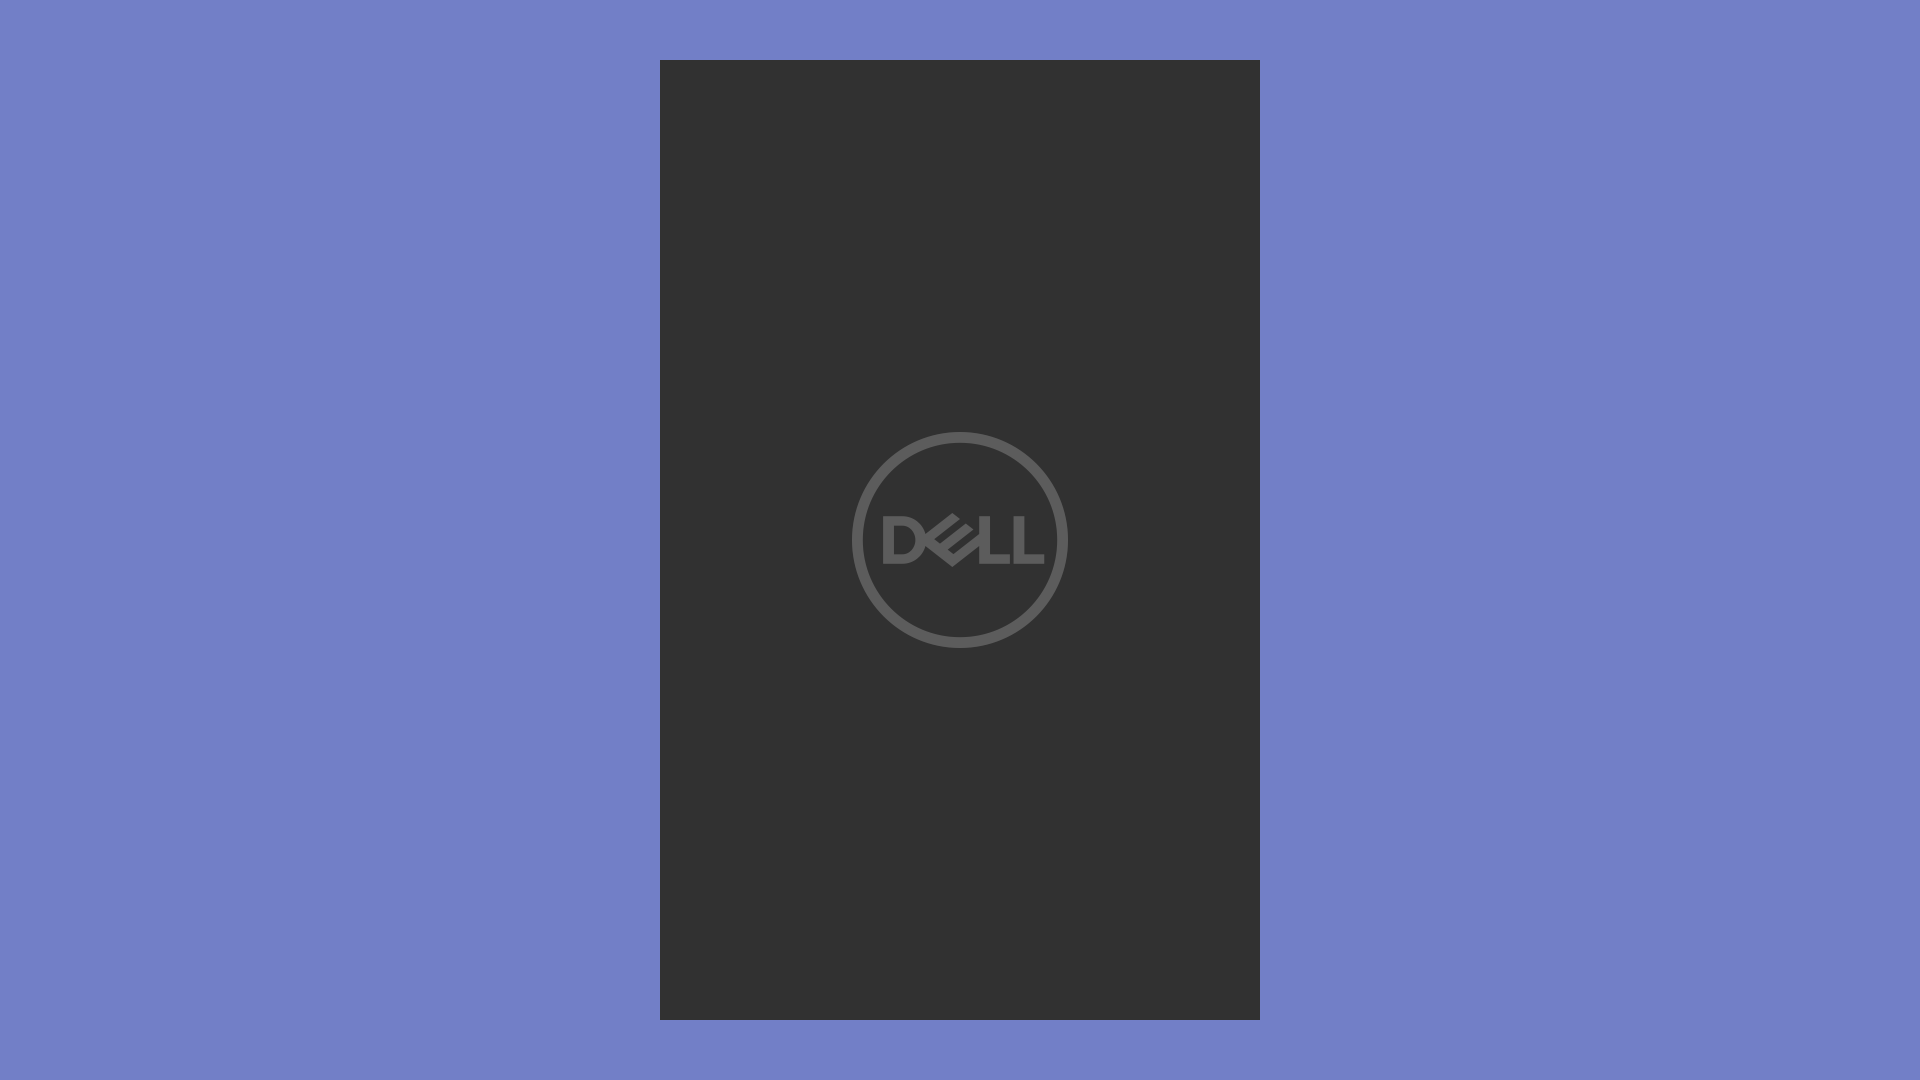 dell surface